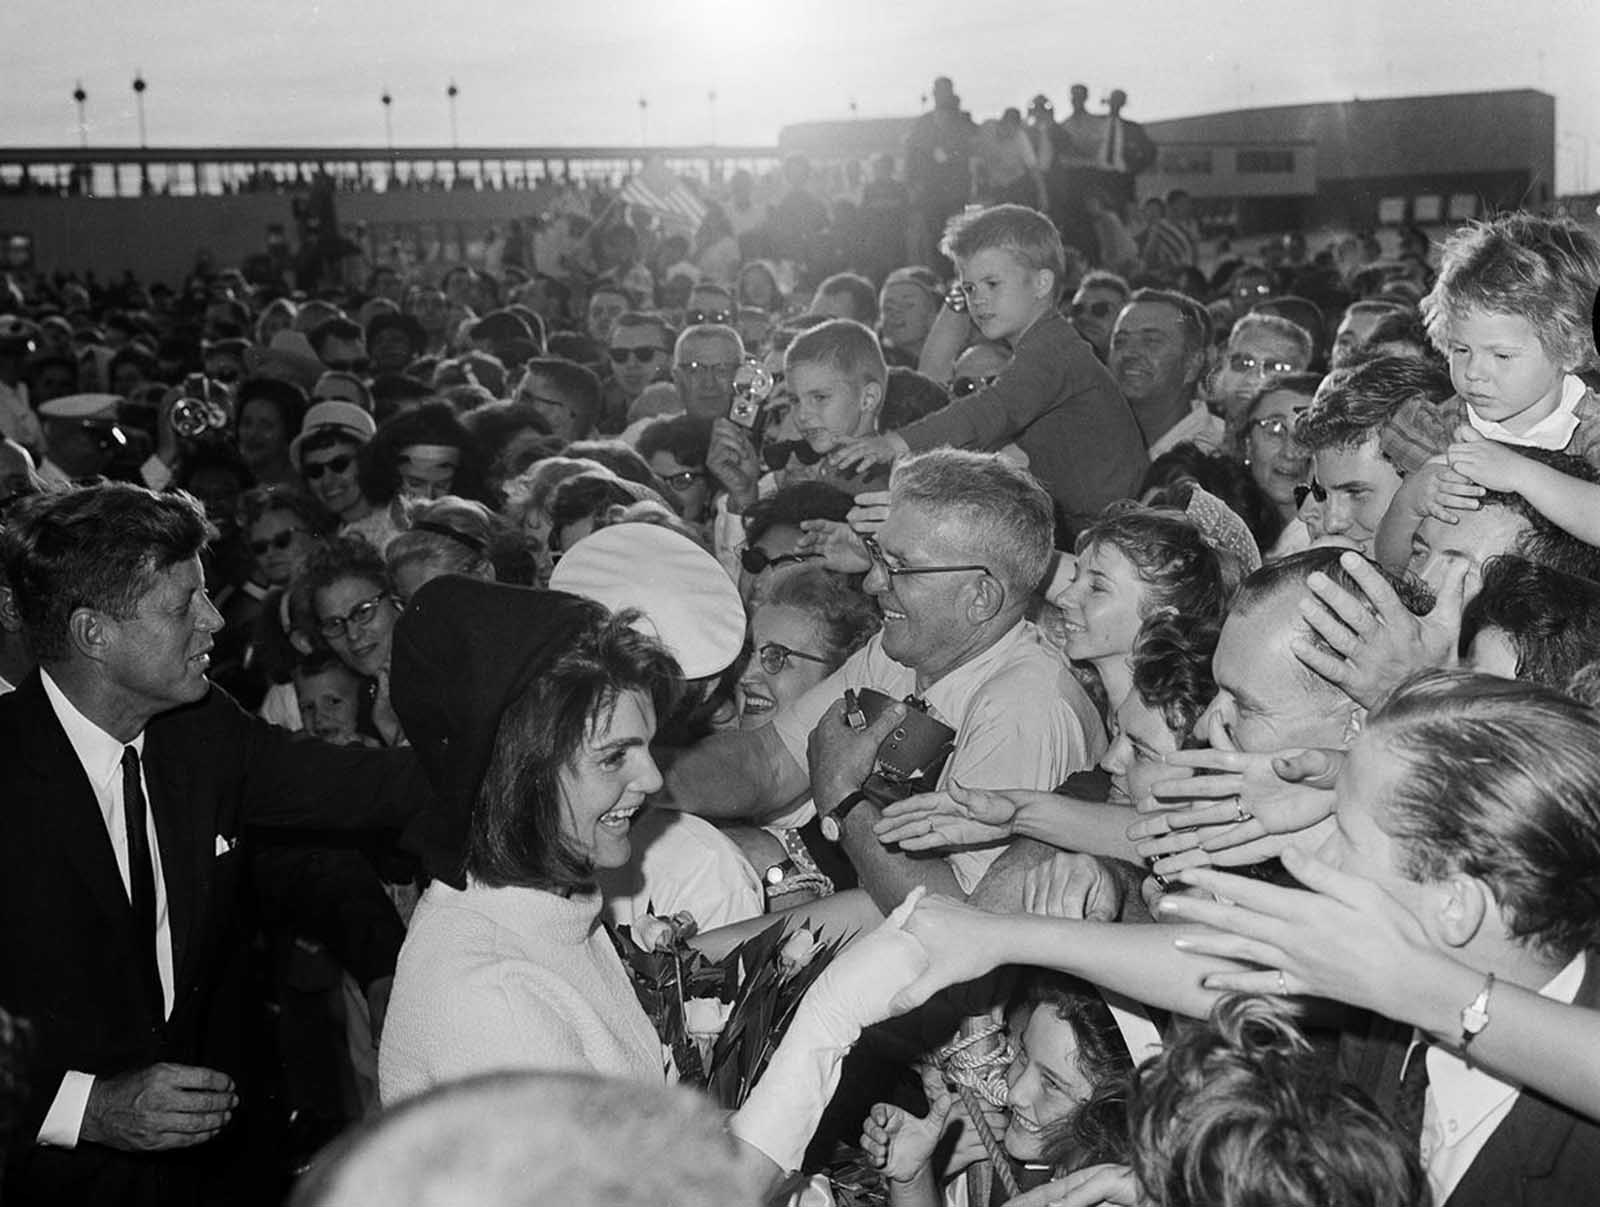 On November 21, 1963, President John F. Kennedy and first lady Jacqueline Kennedy shake hands with well-wishers who lined the ramp at Houston International Airport to welcome them to the Texas city.